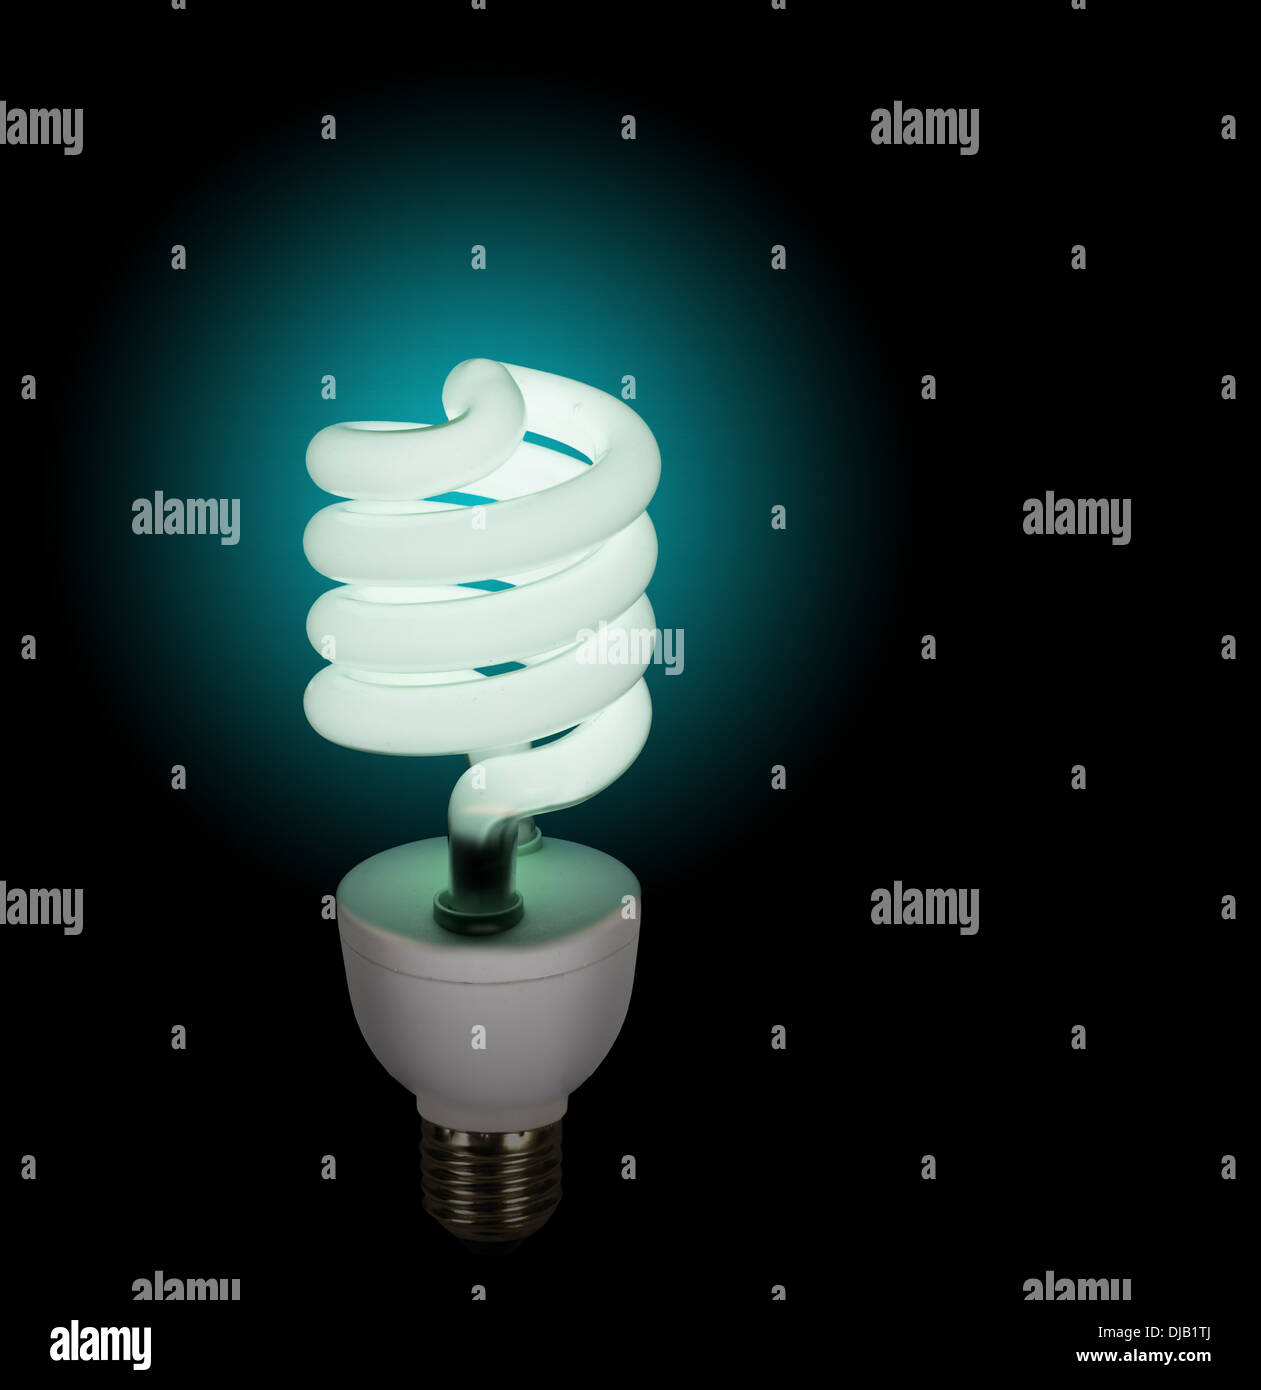 Eco-friendly bulb, lamp background - Stock Image